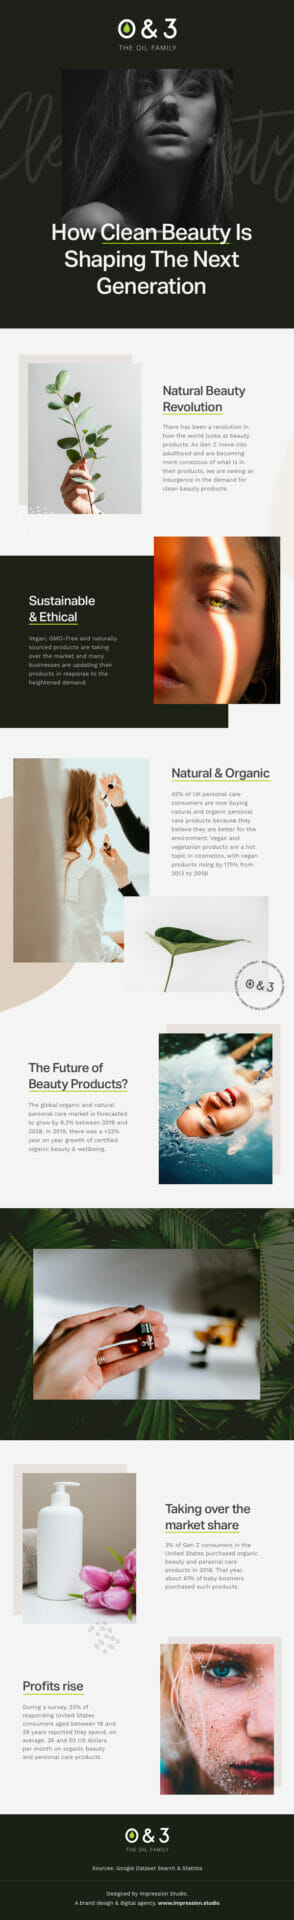 O&3 Clean Beauty Infographic